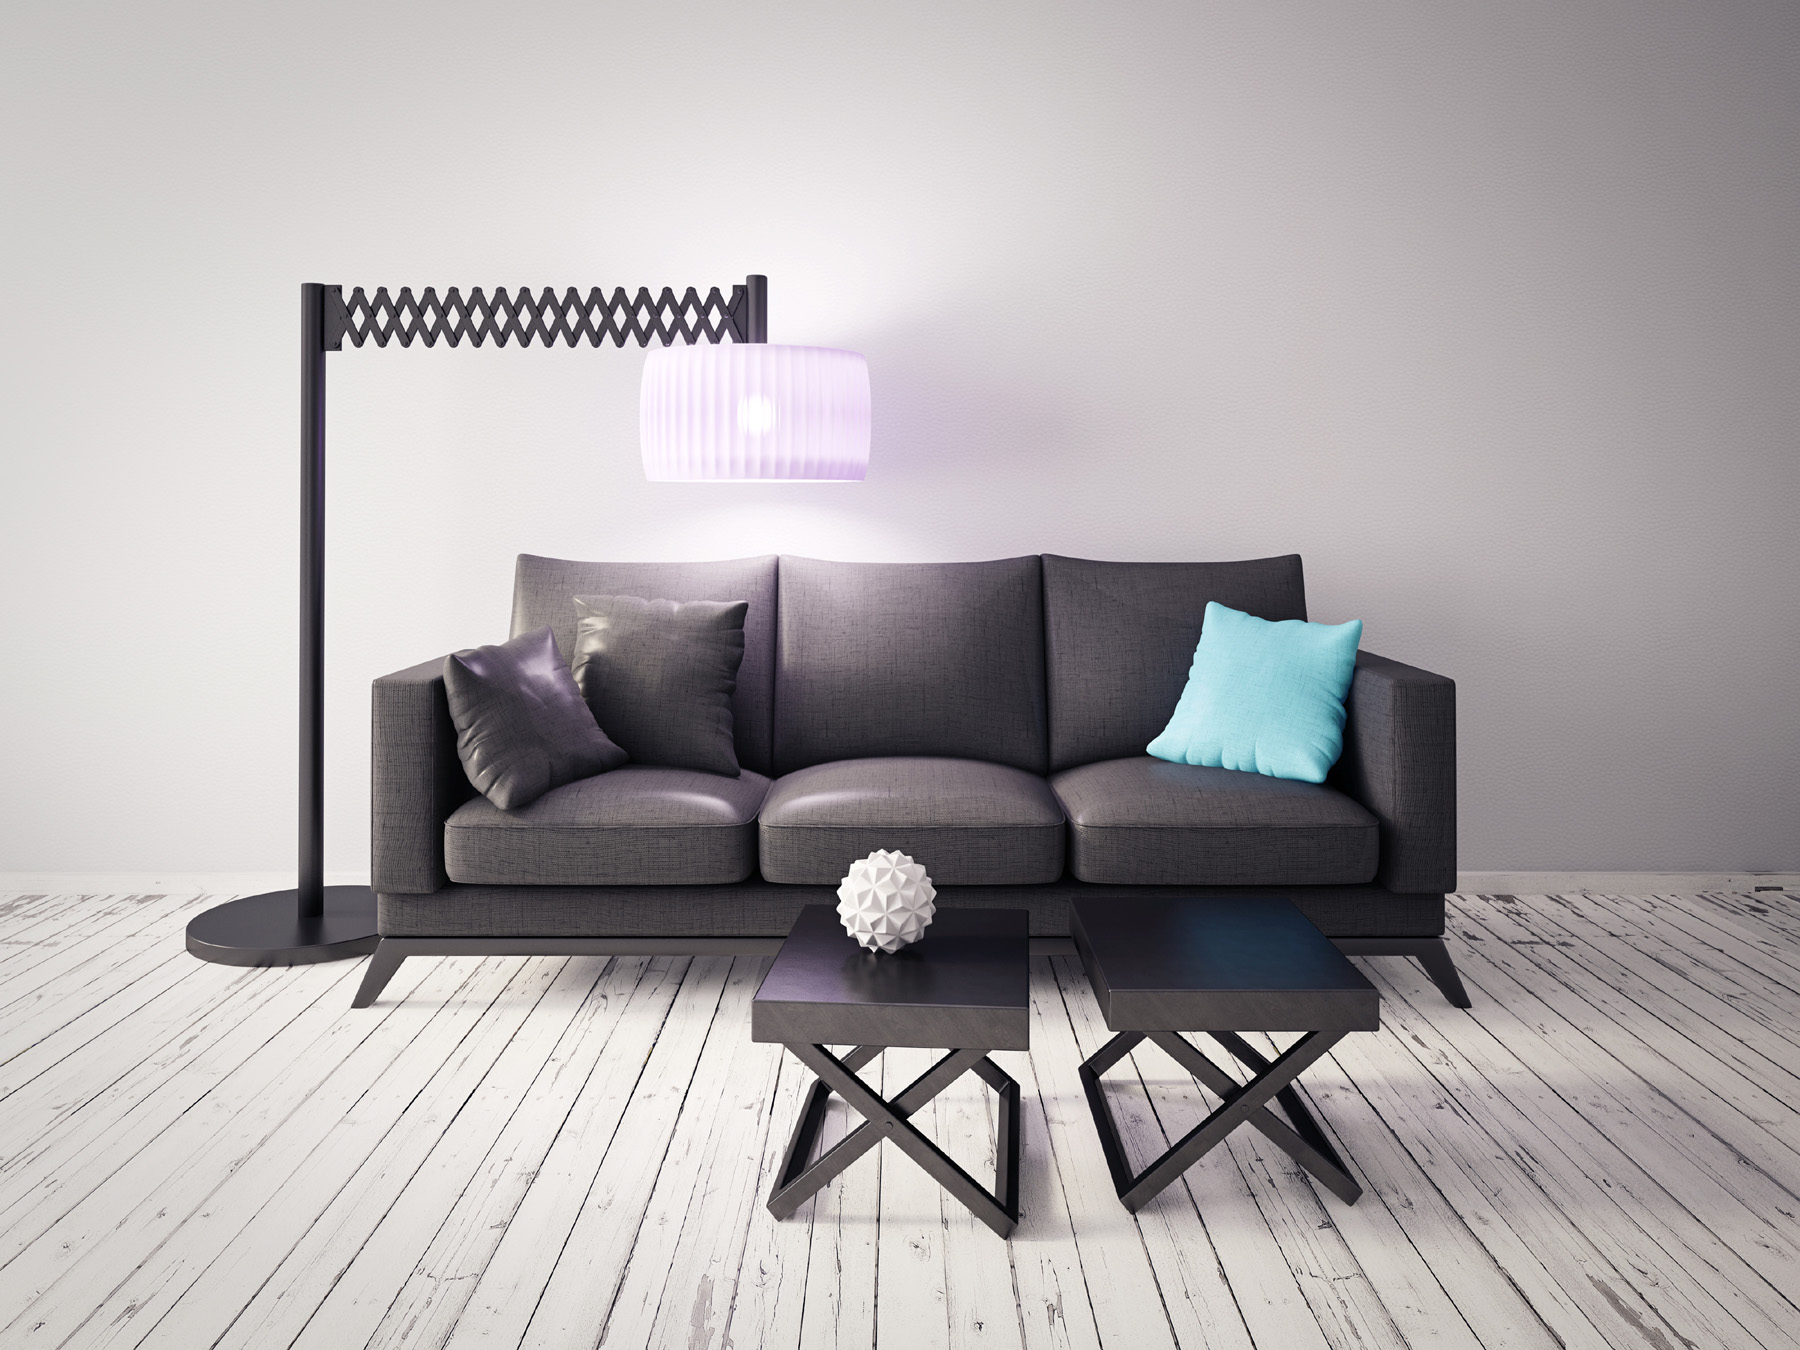 Retractable floor lamp and sofa 51257